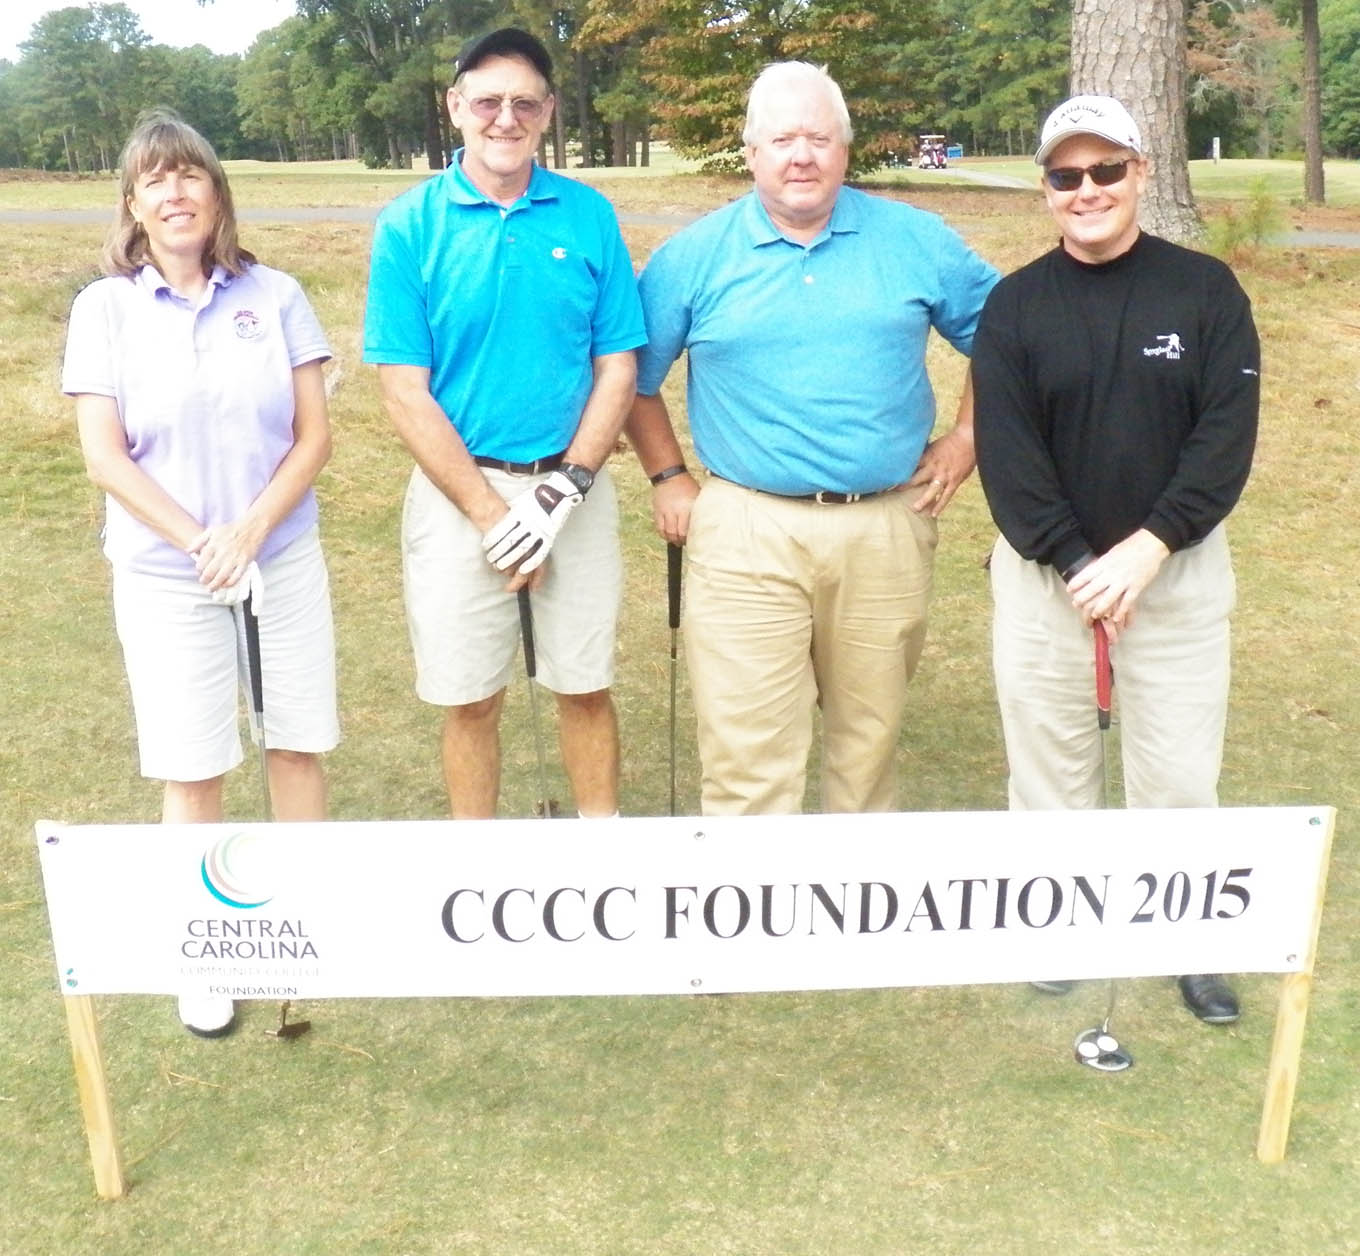 Click to enlarge,  The team of Randy Fletcher, Dawn Rodgers, Mark Hundley, and Tony Quick tied for first in the third flight of the afternoon tournament of the CCCC Foundation Lee Golf Classic.